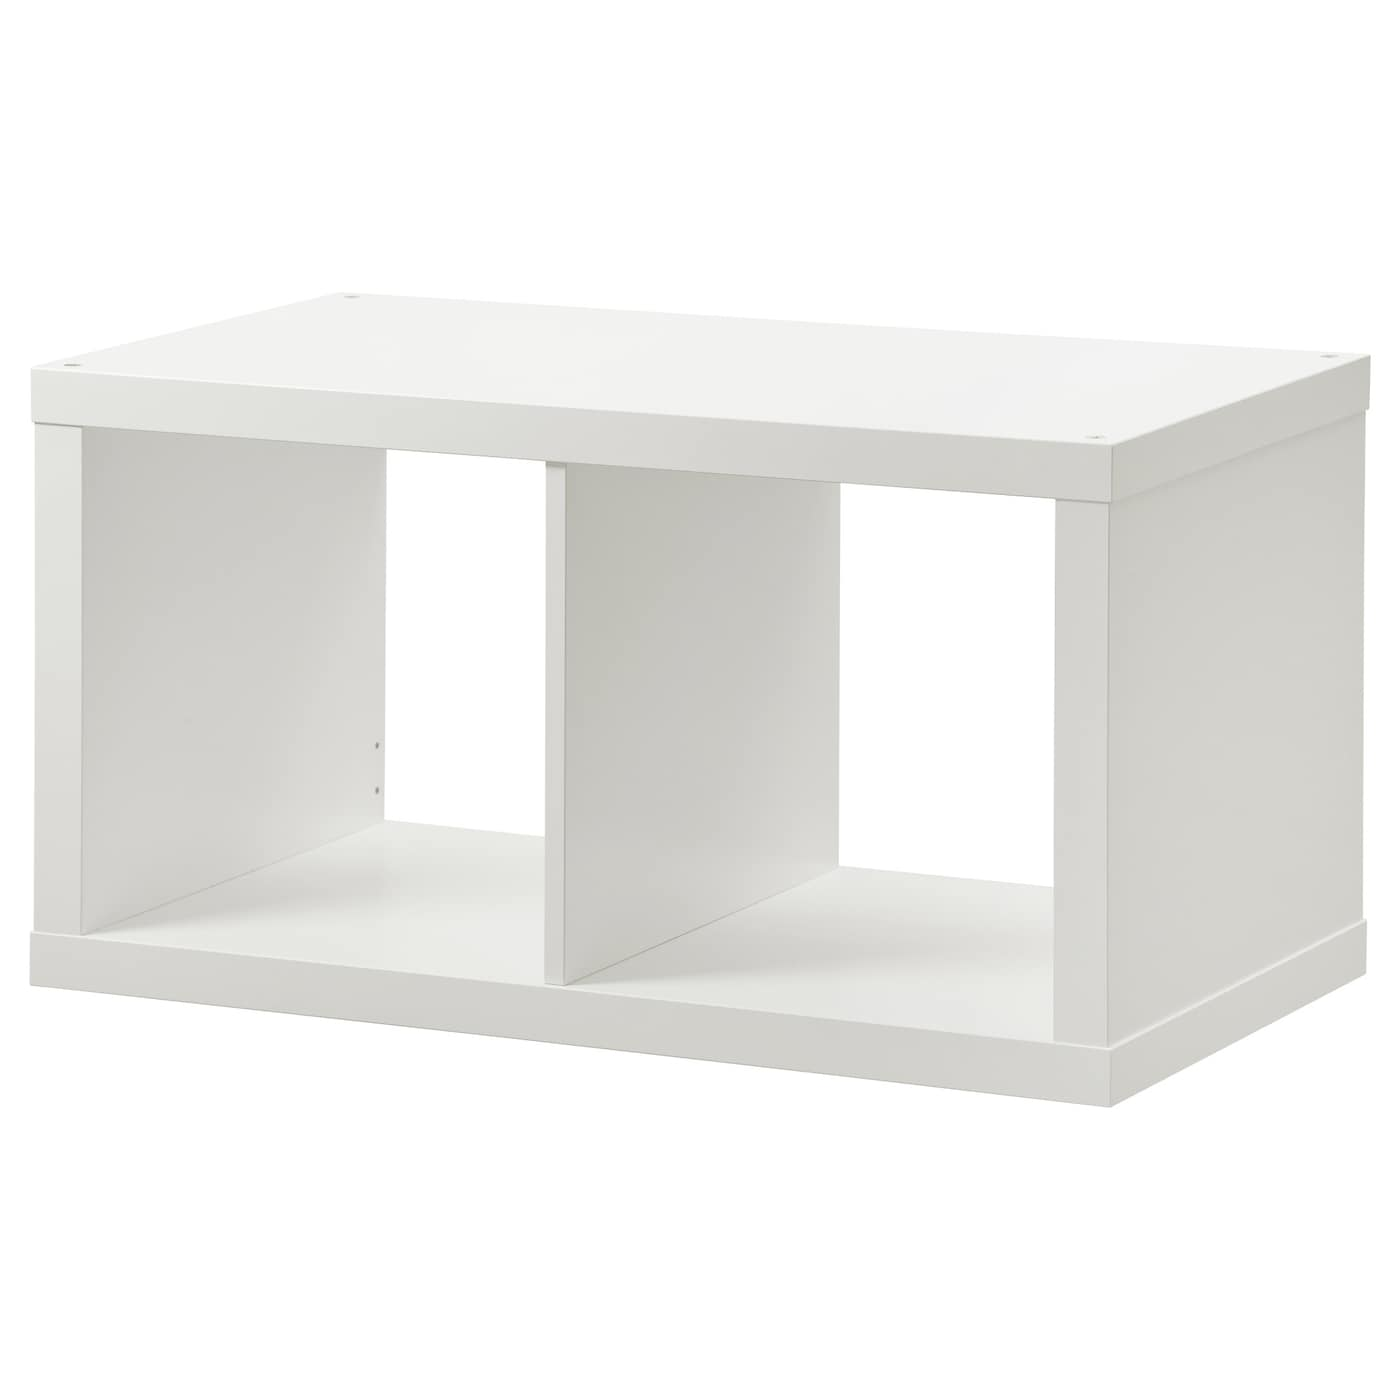 kallax shelving unit white 77x42 cm ikea. Black Bedroom Furniture Sets. Home Design Ideas